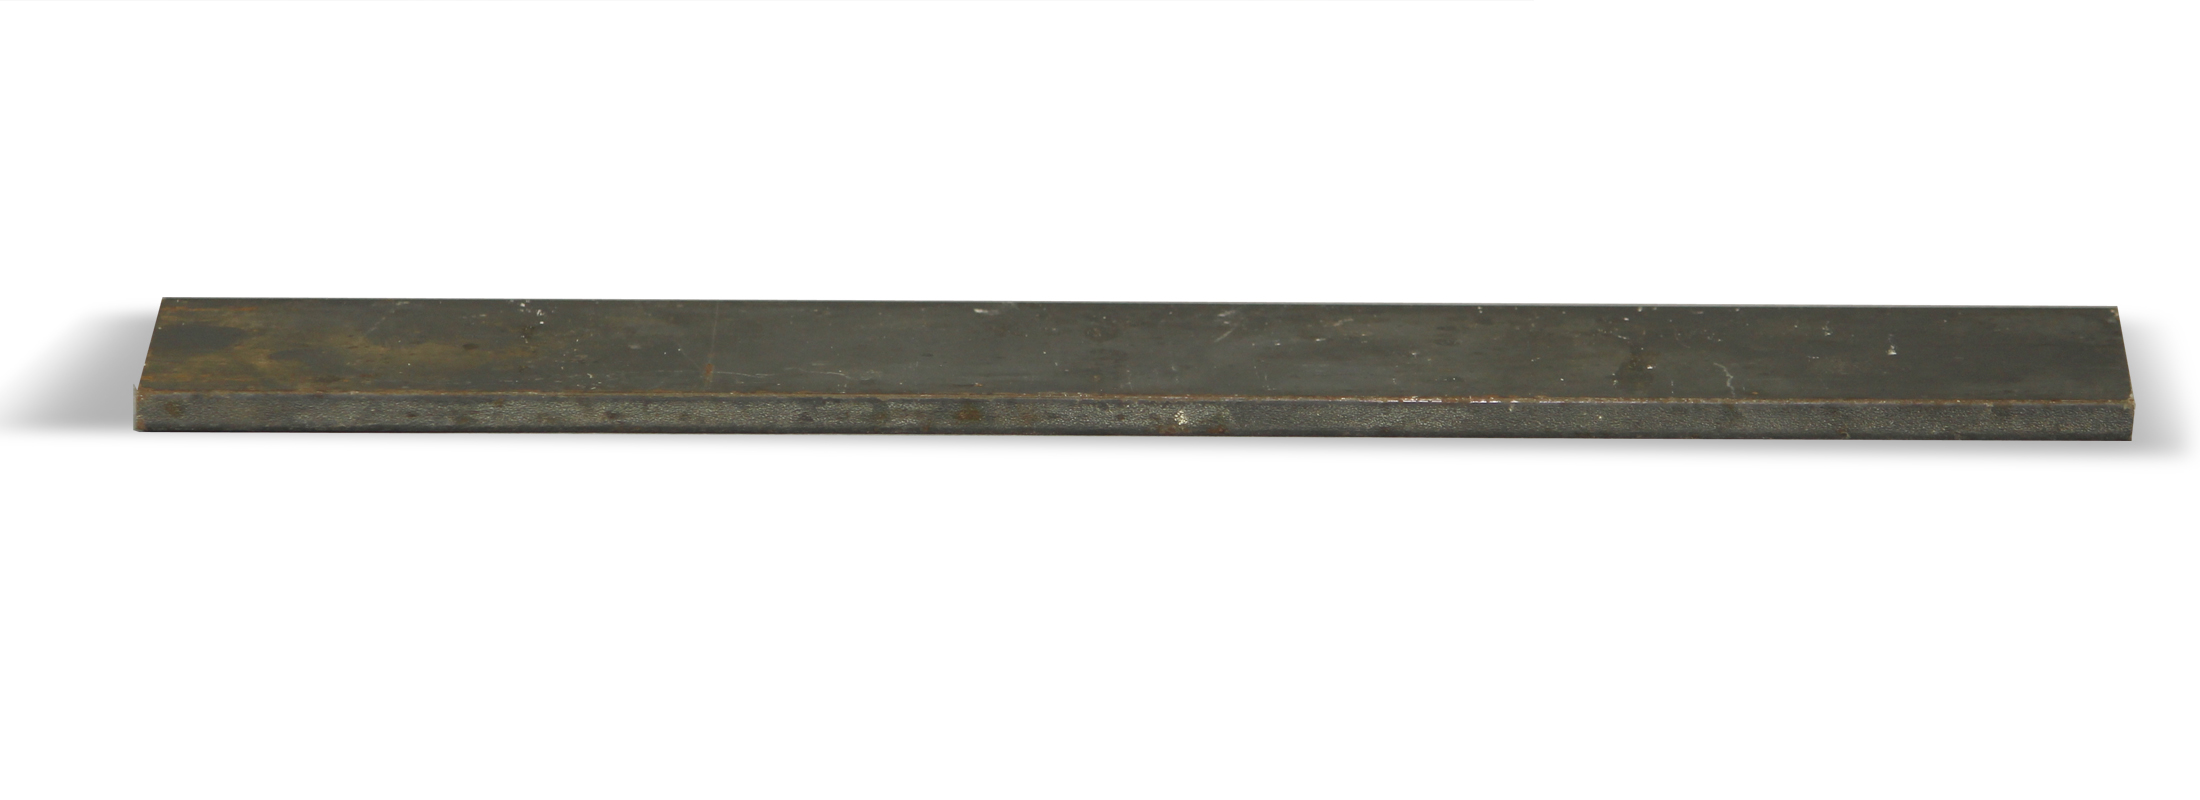 Hot Rolled Steel Flat Bar Stock